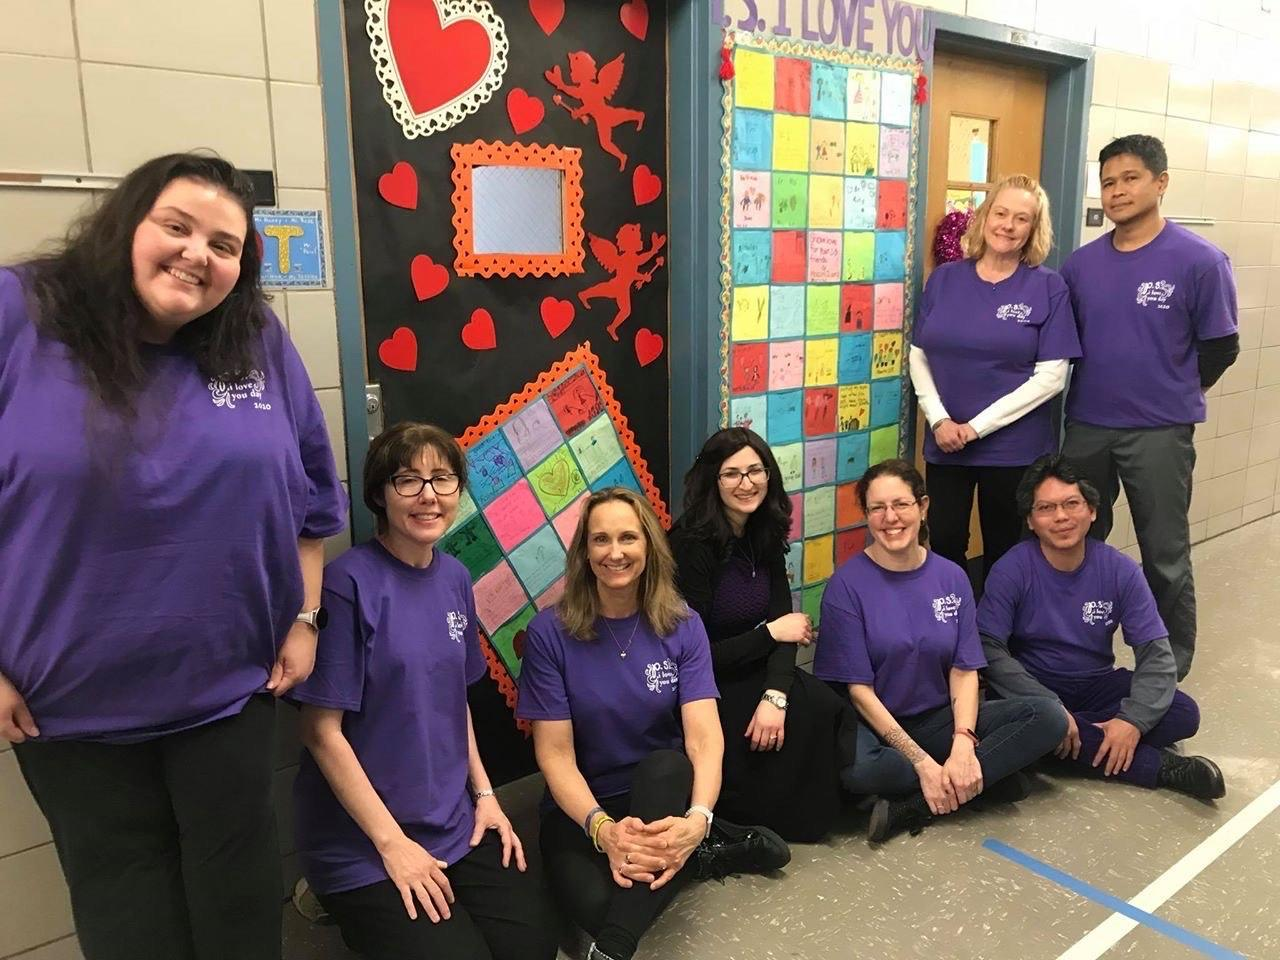 Teachers dressed in purple for PS I Love You Day